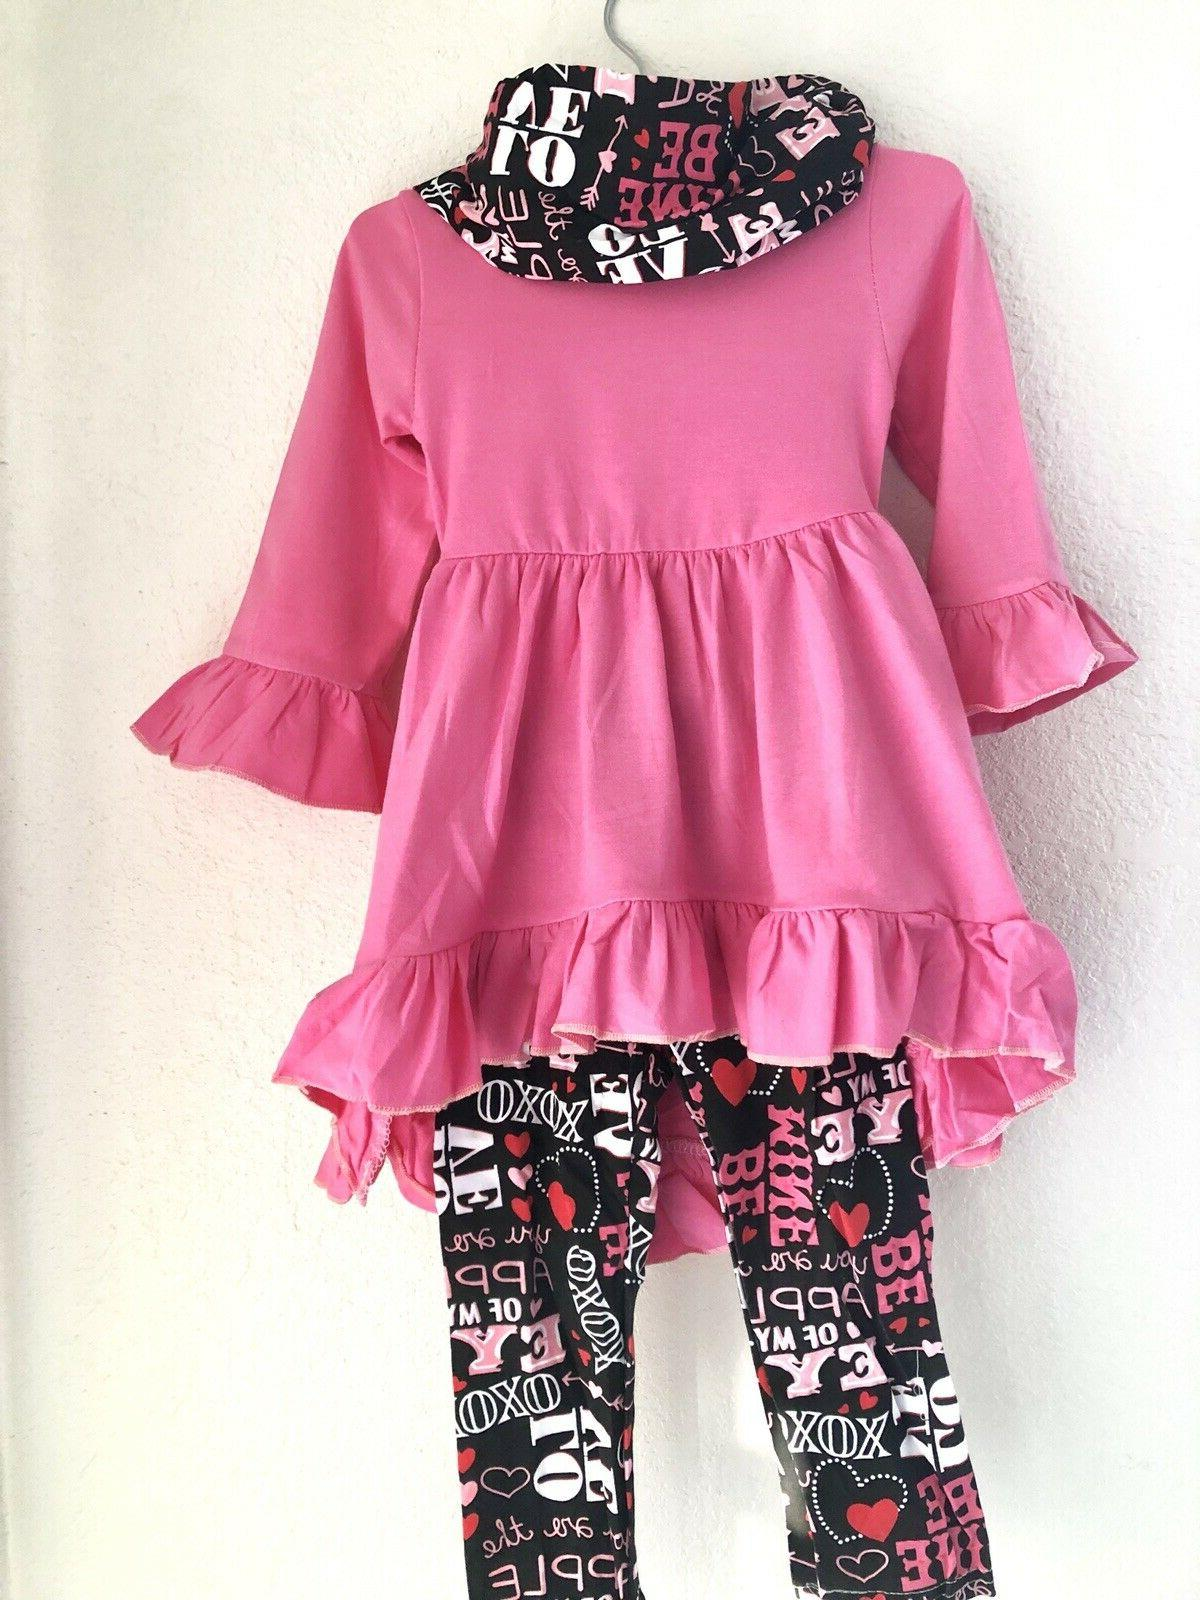 Boutique USA Clothes Ruffle Tops Set Outfit FREE SHIP